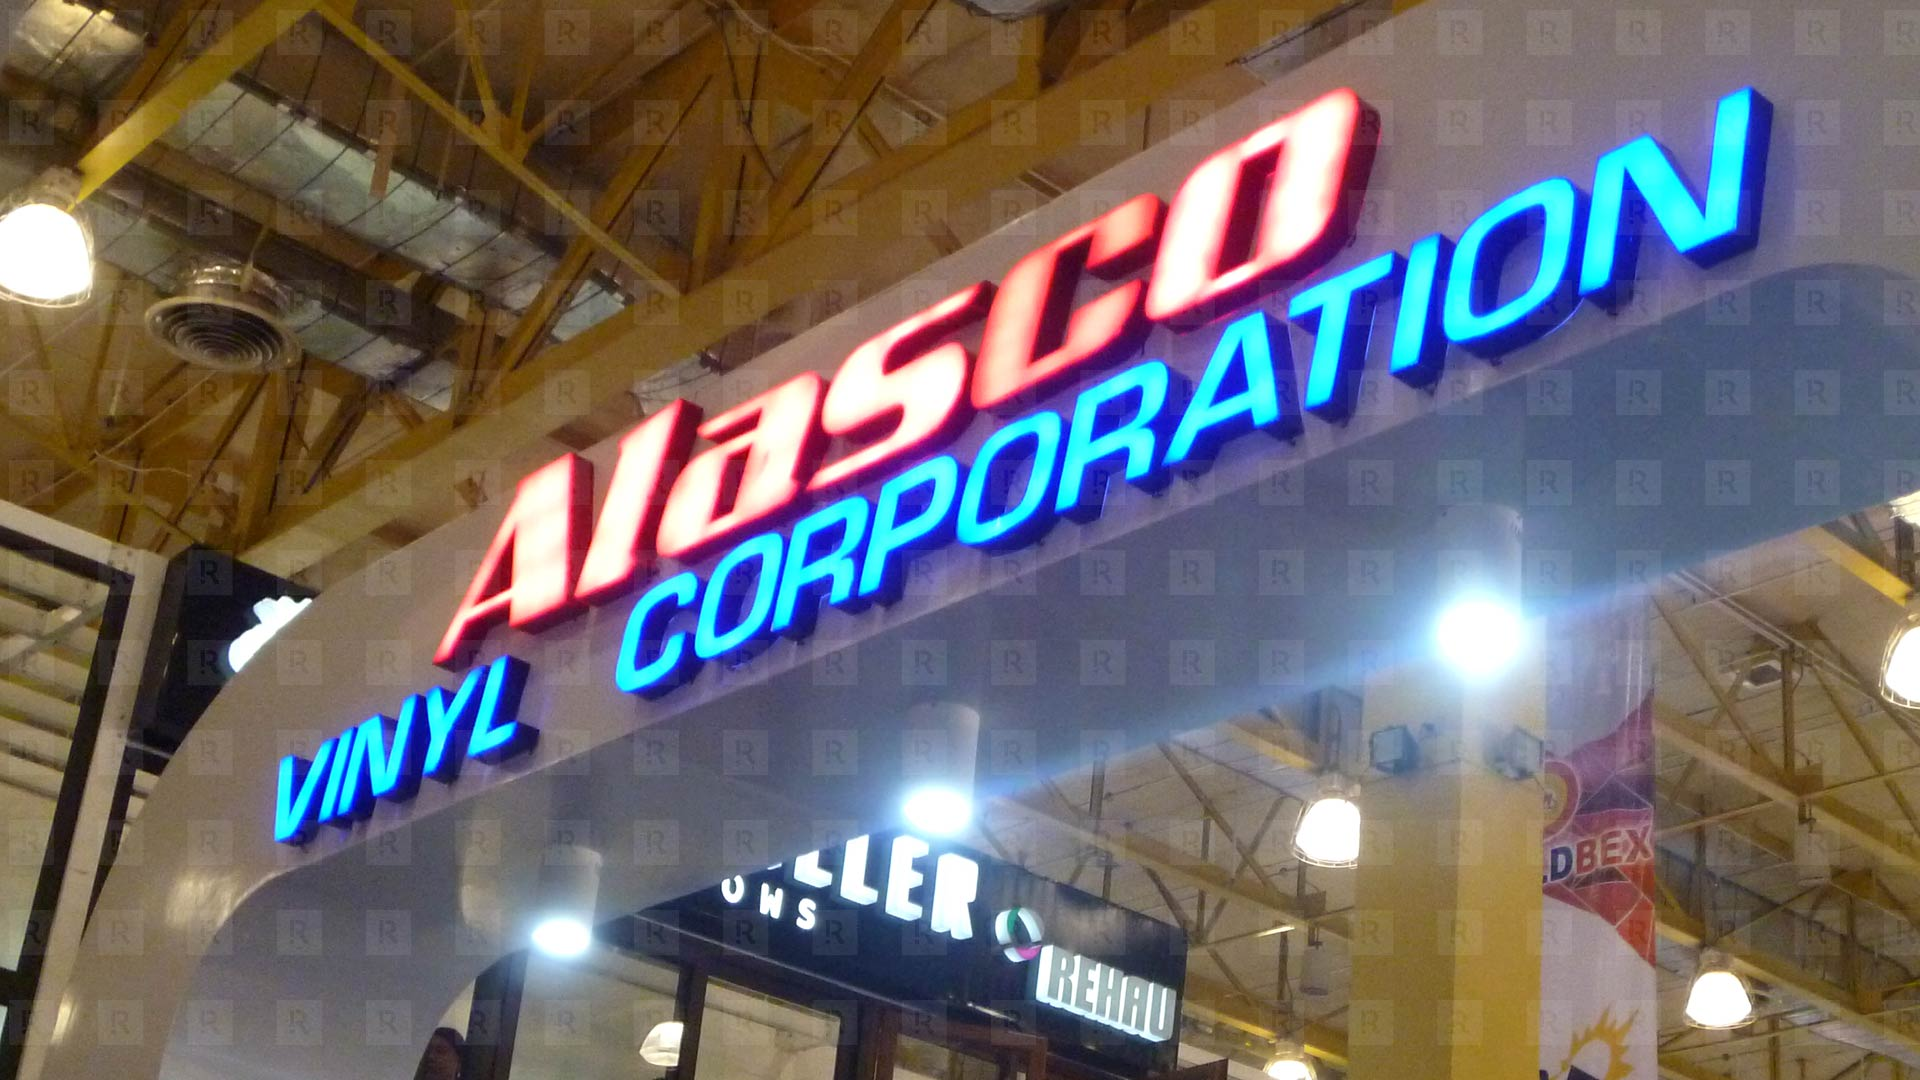 Alasco Booth Worldbex